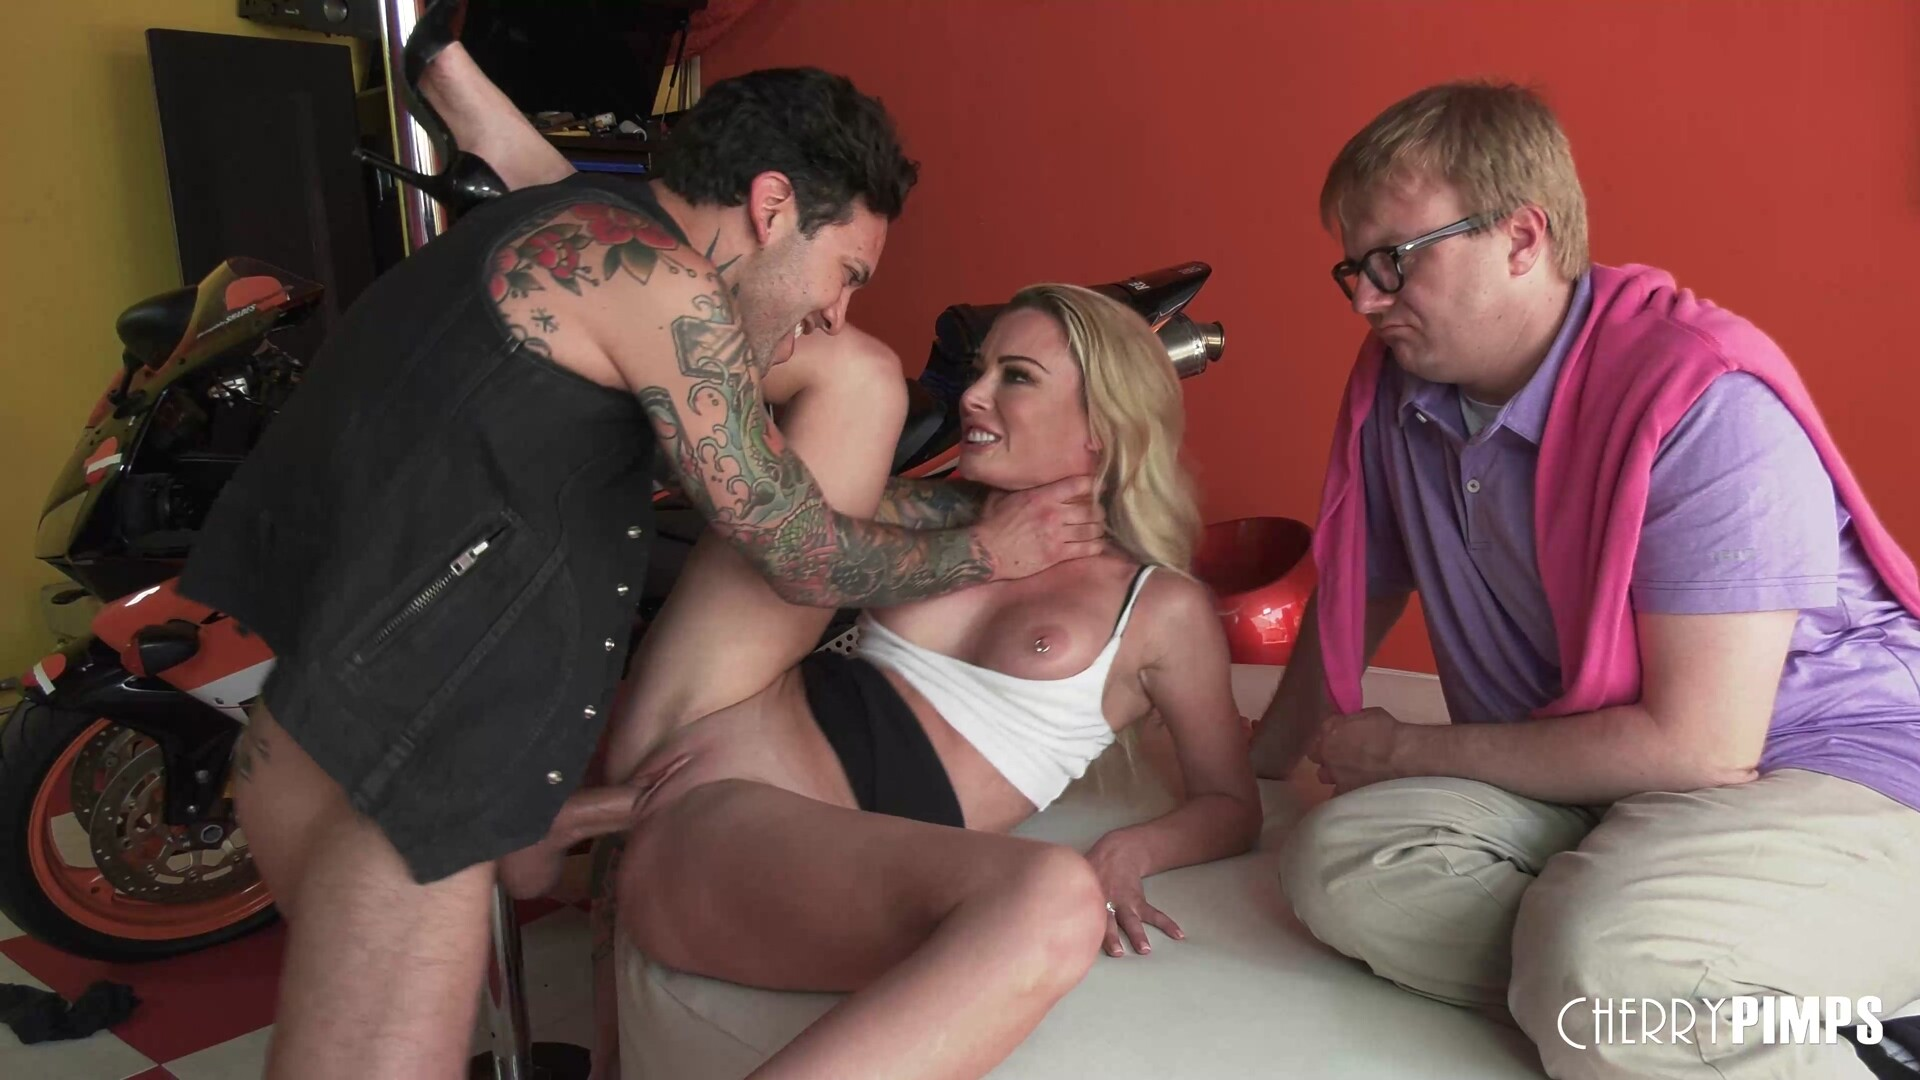 Hot Blonde Big Tit Wife Pounded Hard In Front of Wussy Cucked Husband, By a Badass Stud